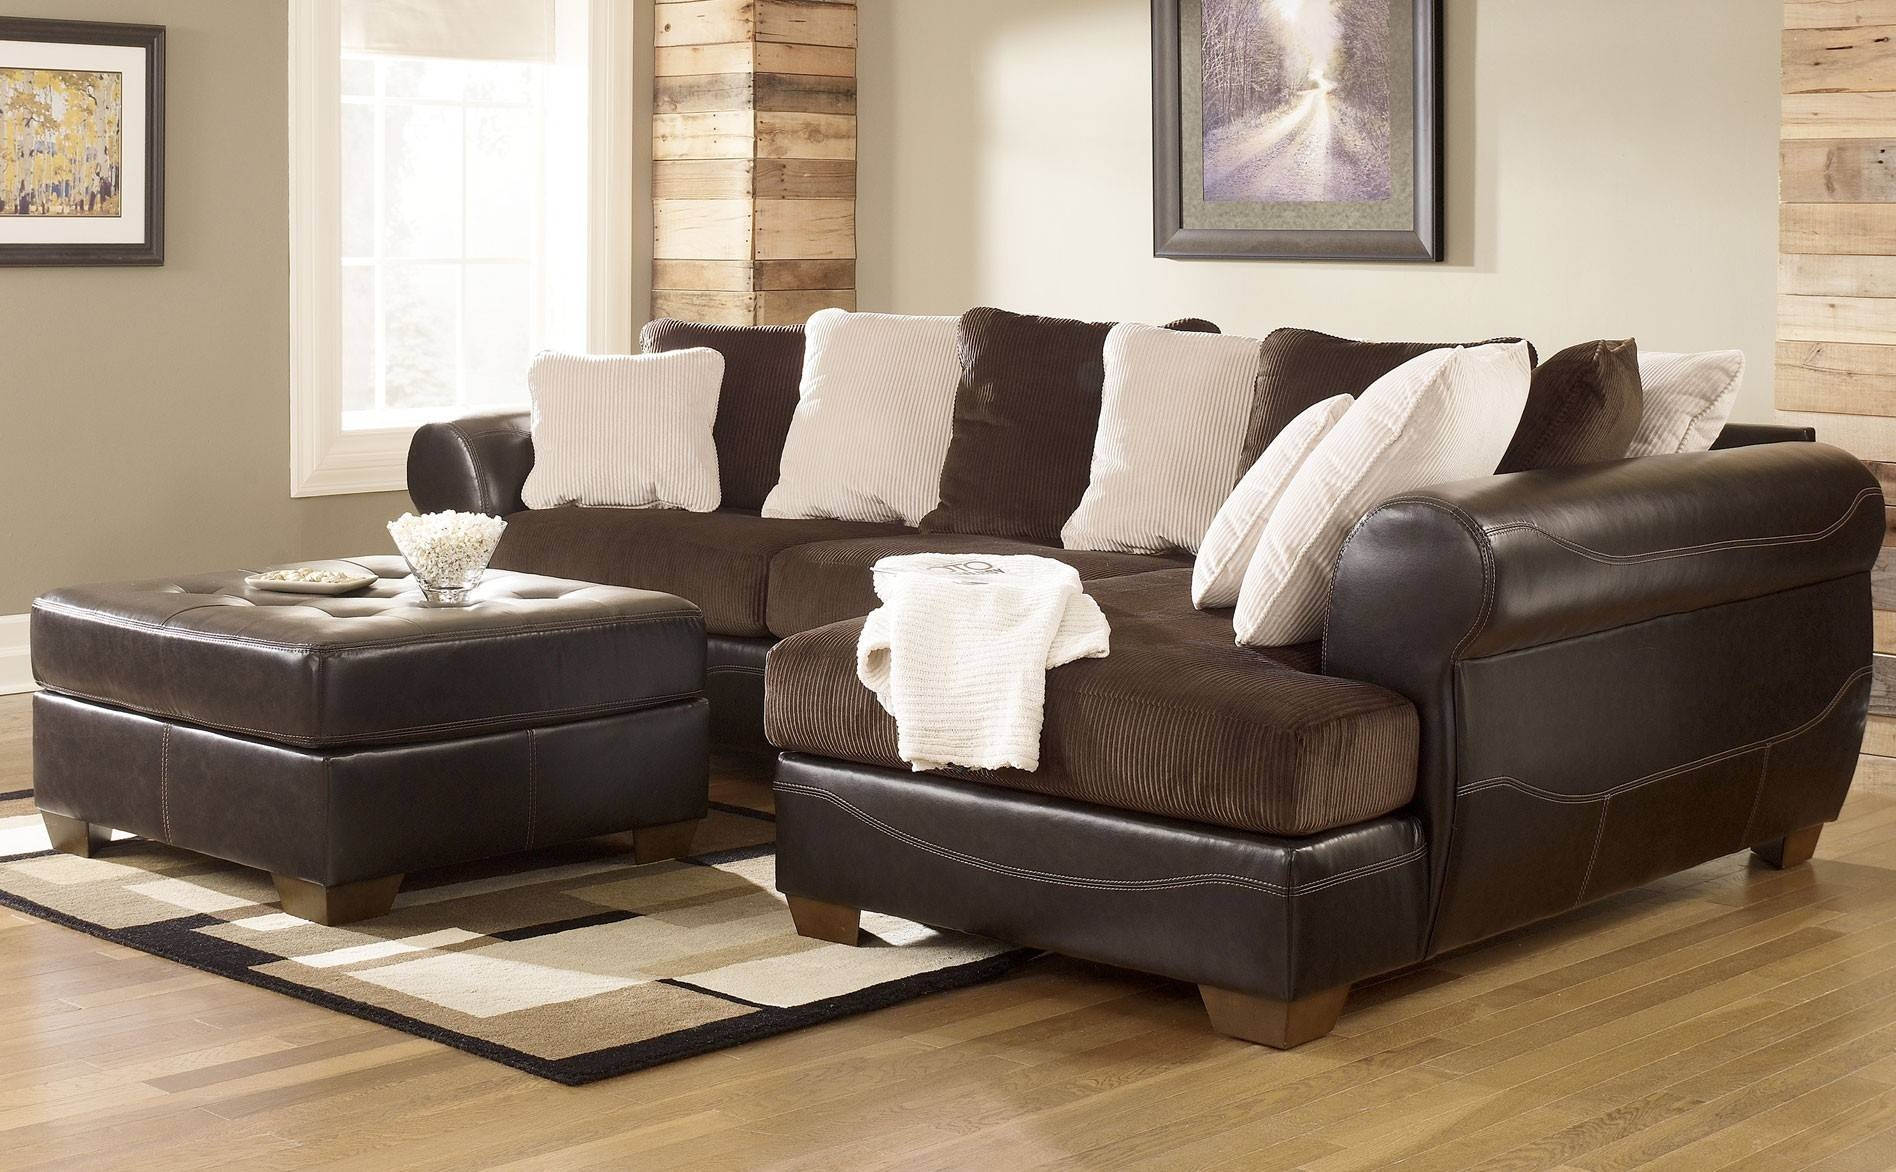 Furniture: Ashley Furniture Jacksonville Fl Leather Couch With regarding Ashley Furniture Leather Sectional Sofas (Image 9 of 15)